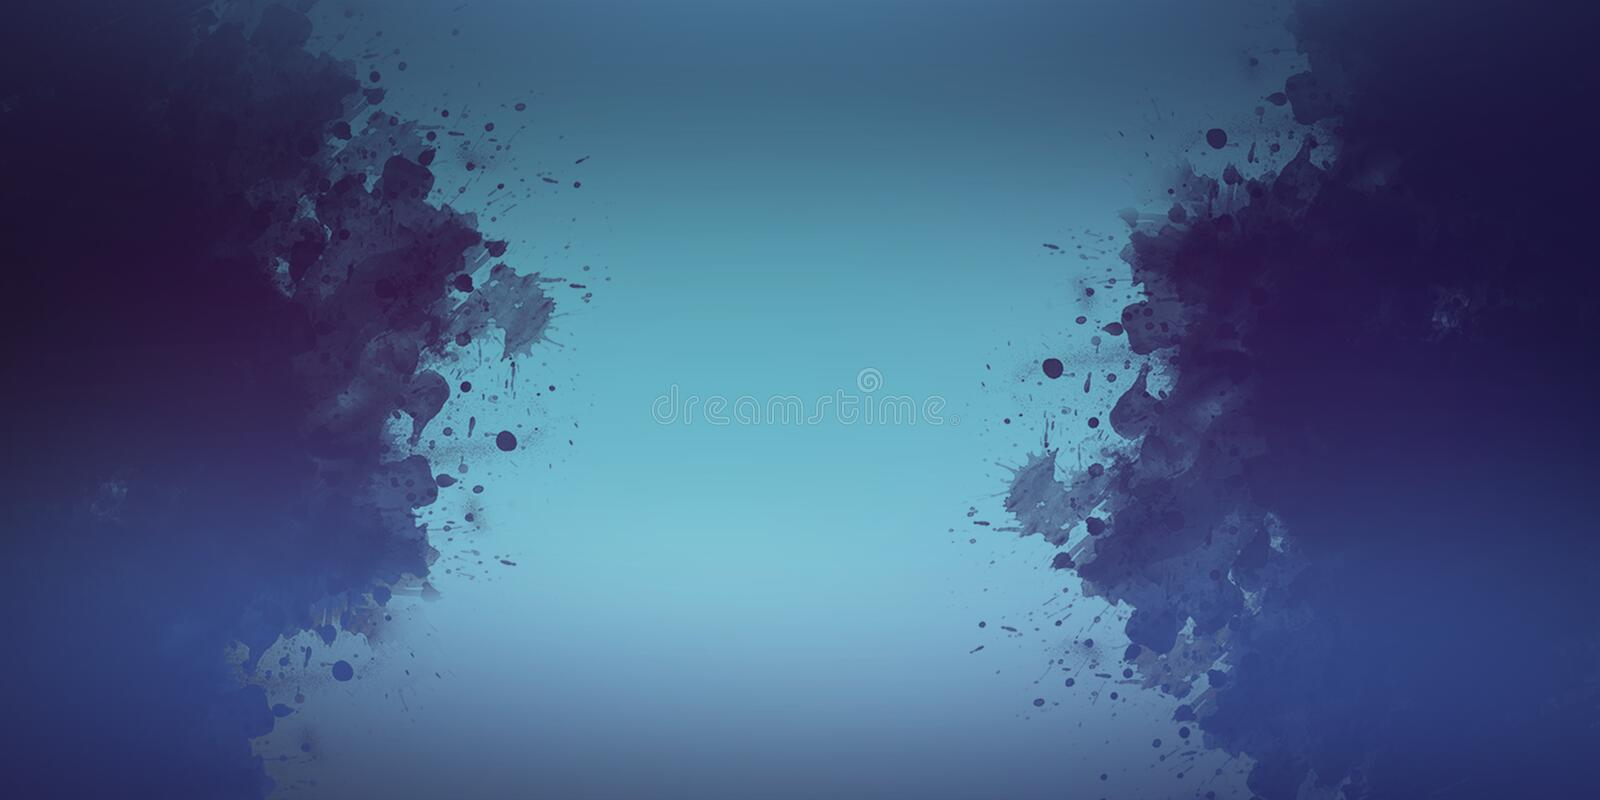 Abstract watercolor art hand paint background royalty free illustration